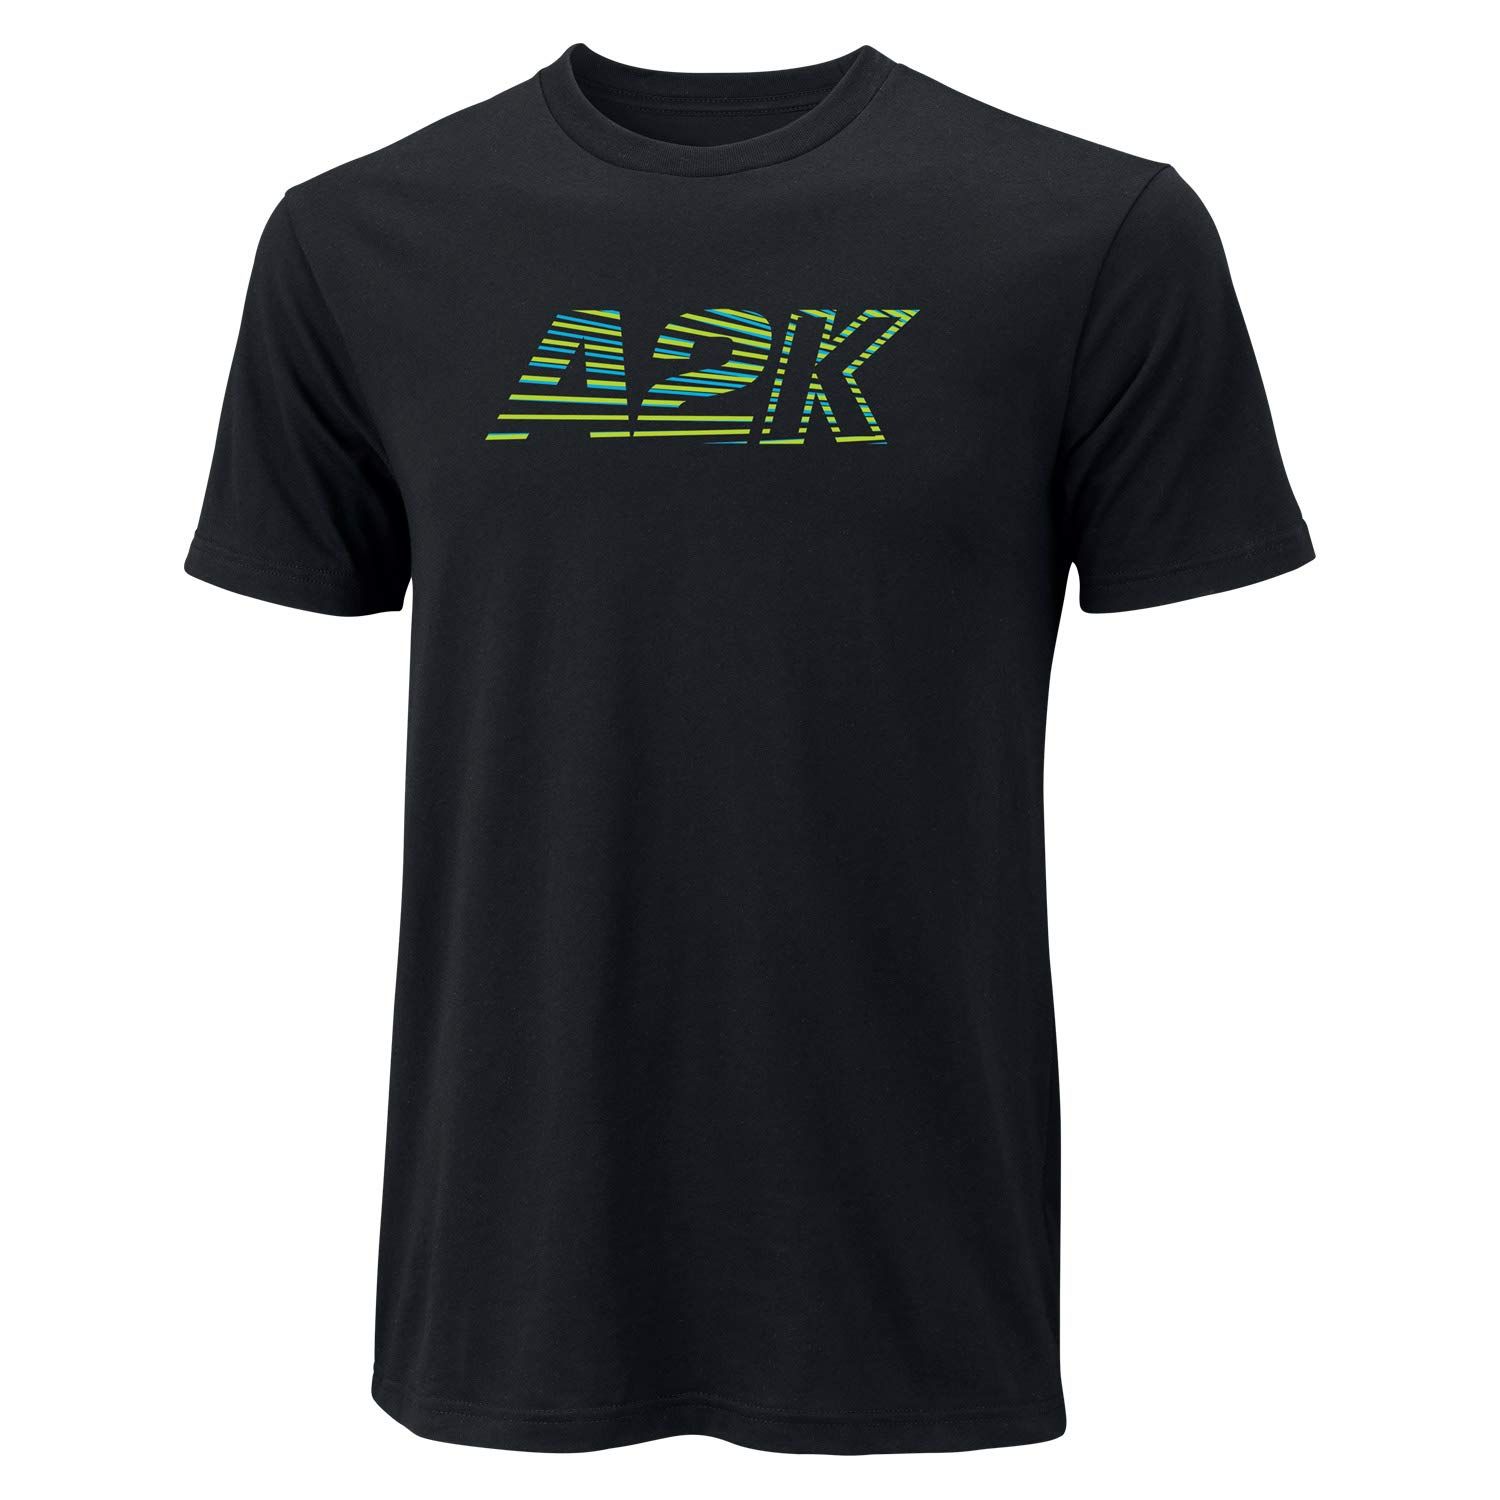 Wilson Sporting Goods A2K Tee, Large